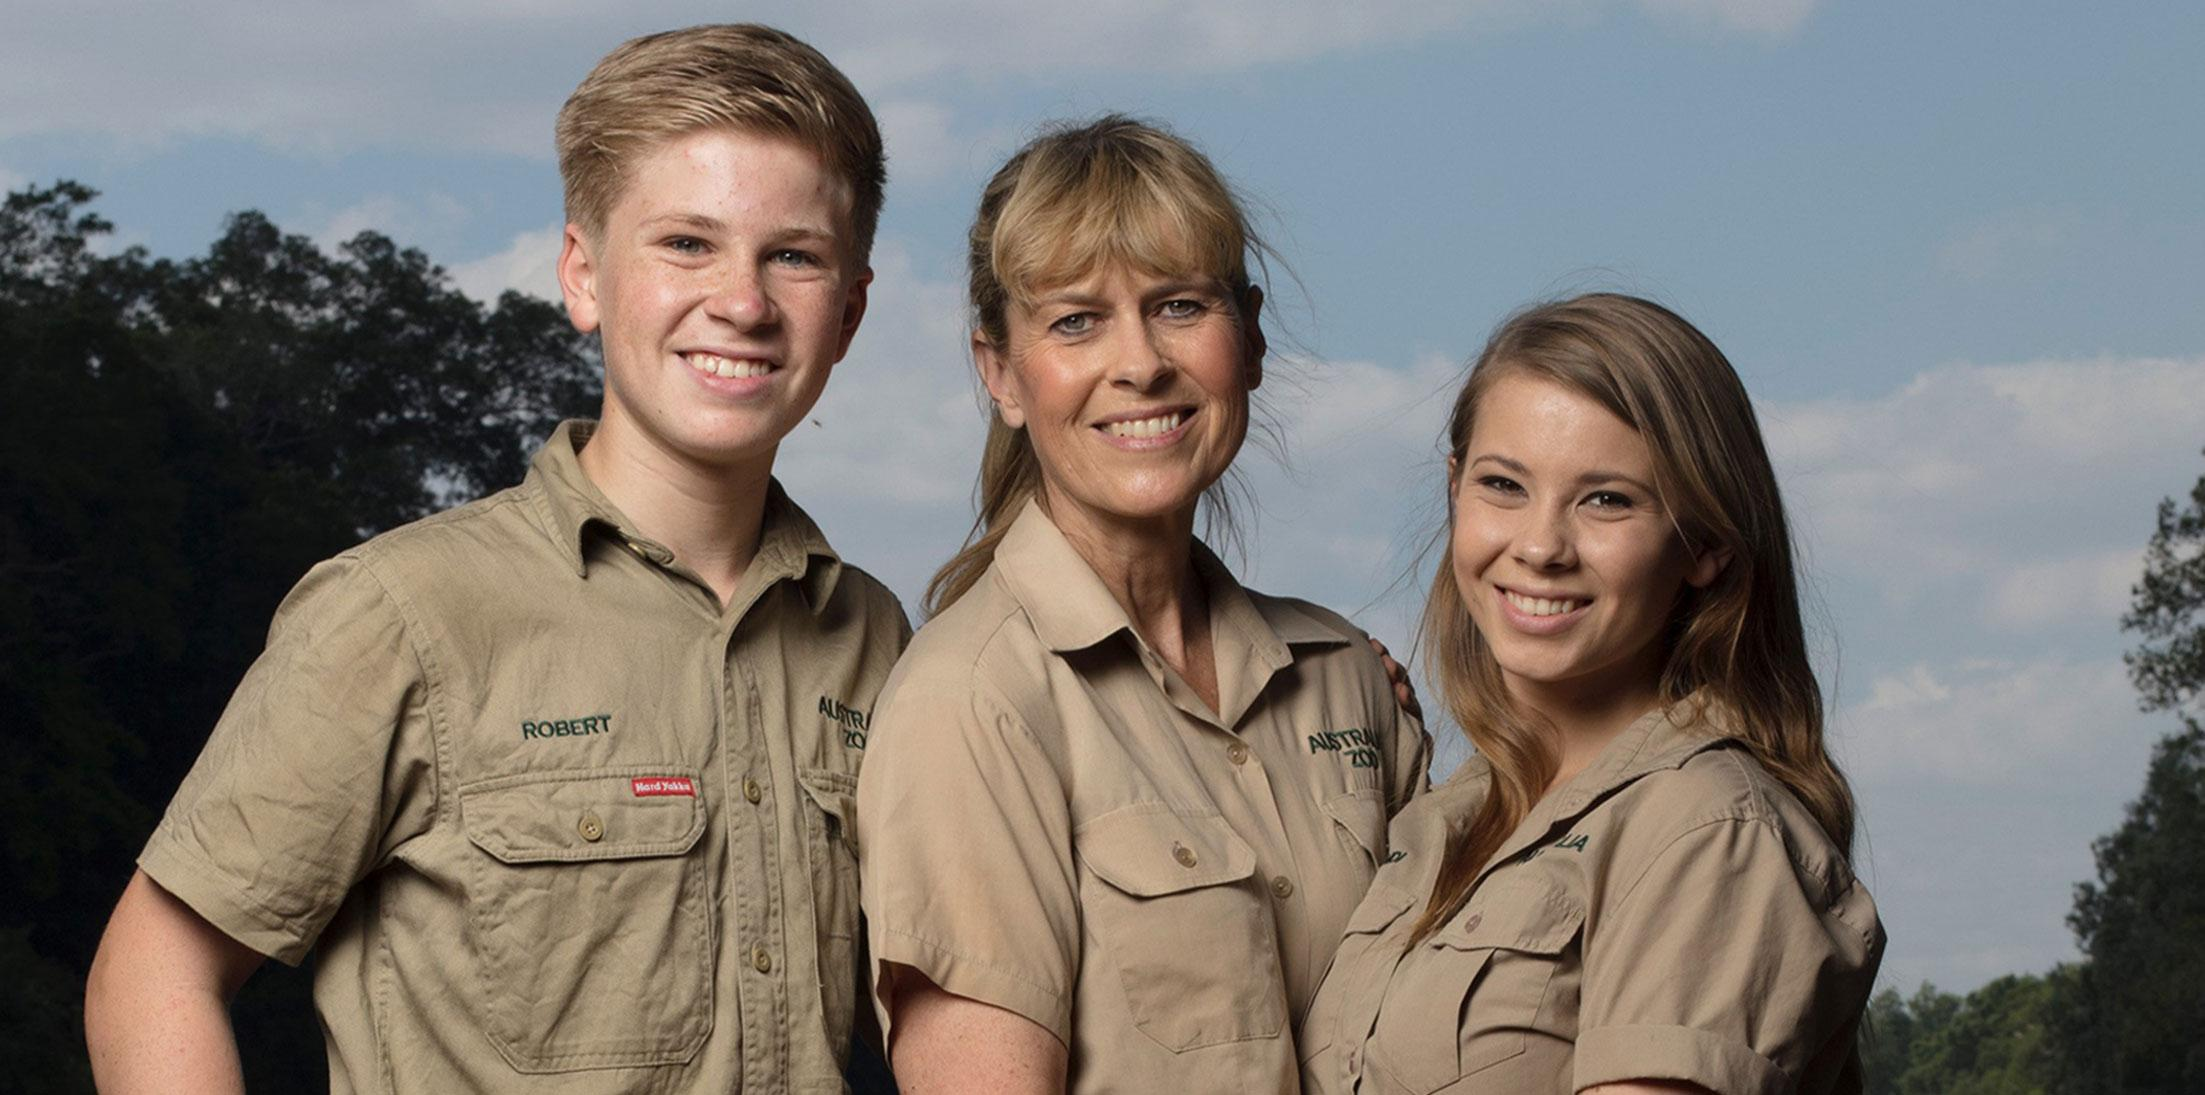 irwin family returning animal planet long